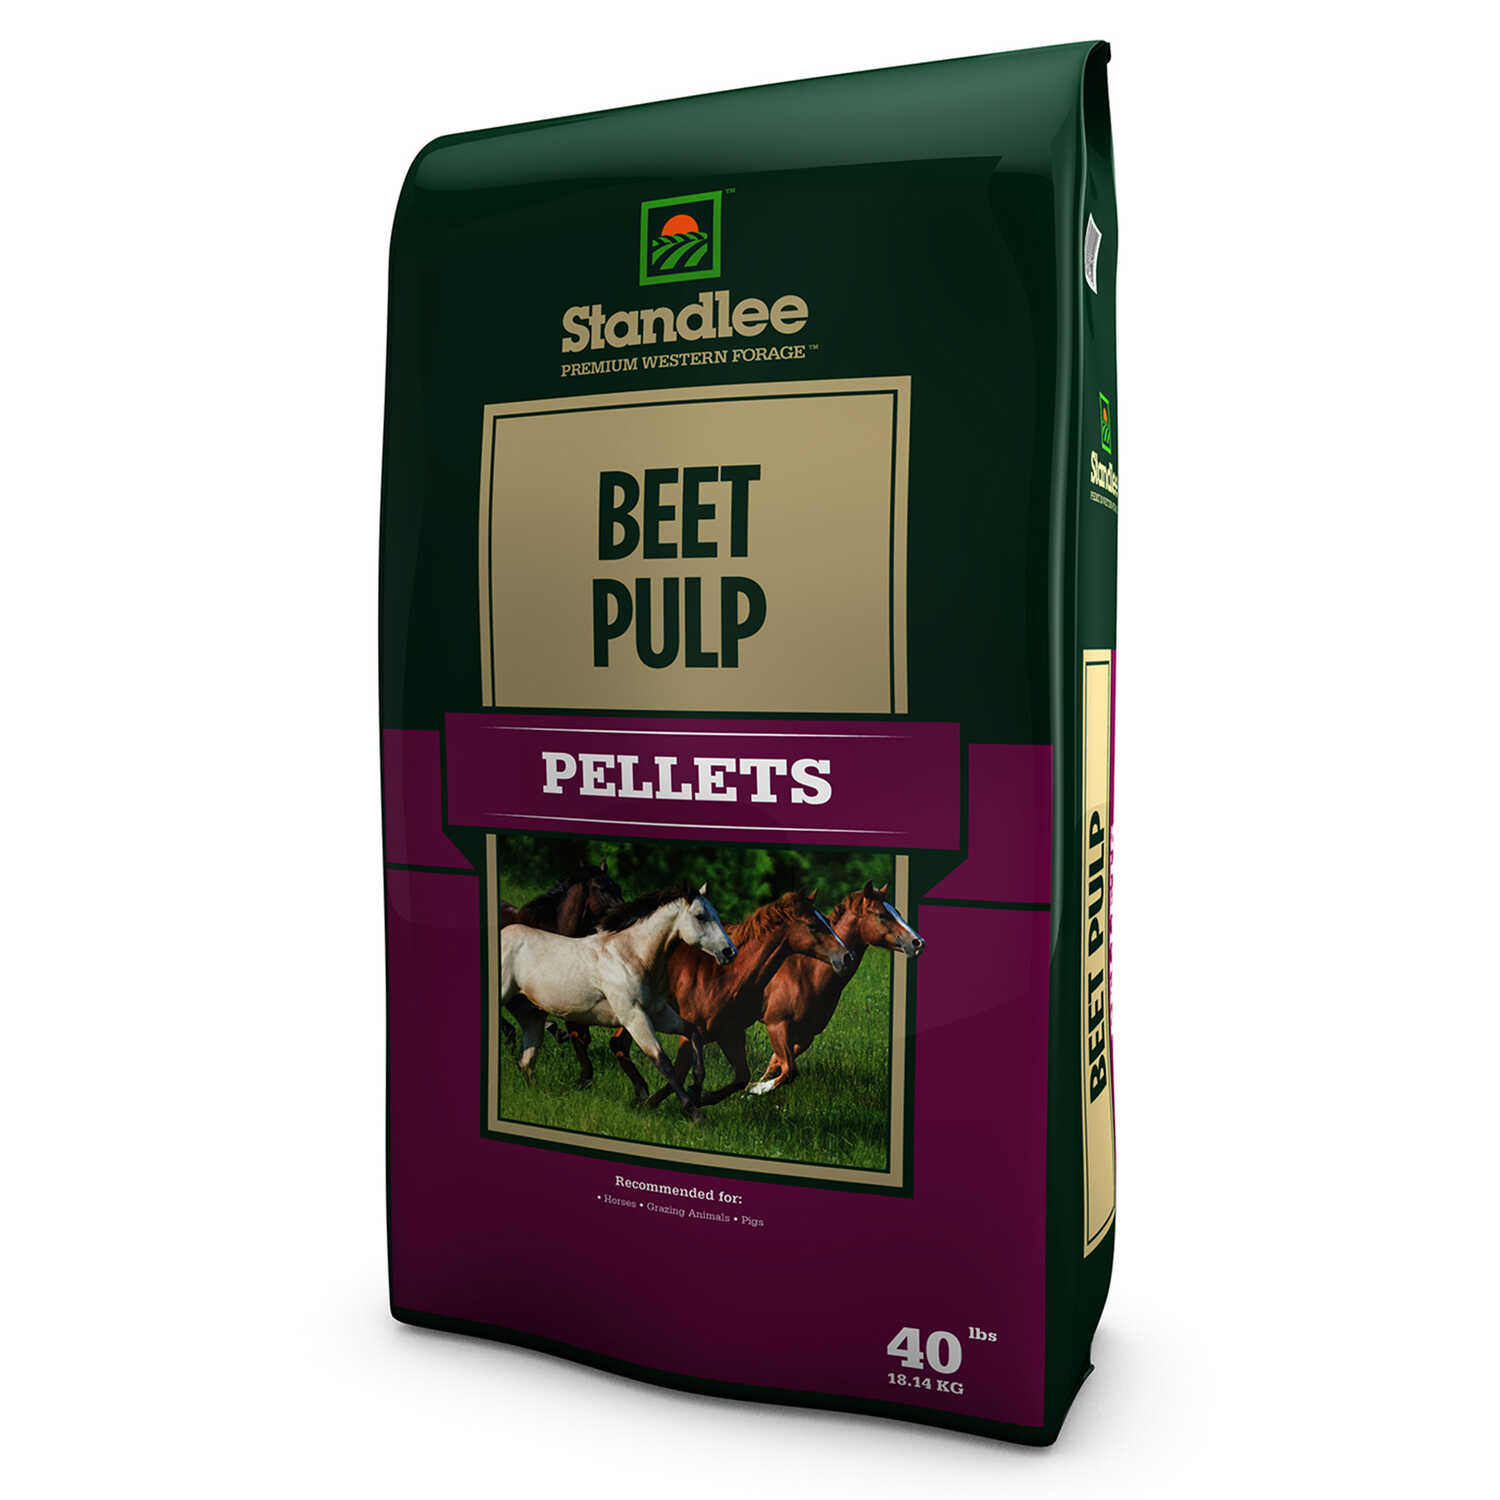 Standlee Premium Western Forage  Beet Pulp  Pellets  For Horses 40 lb.